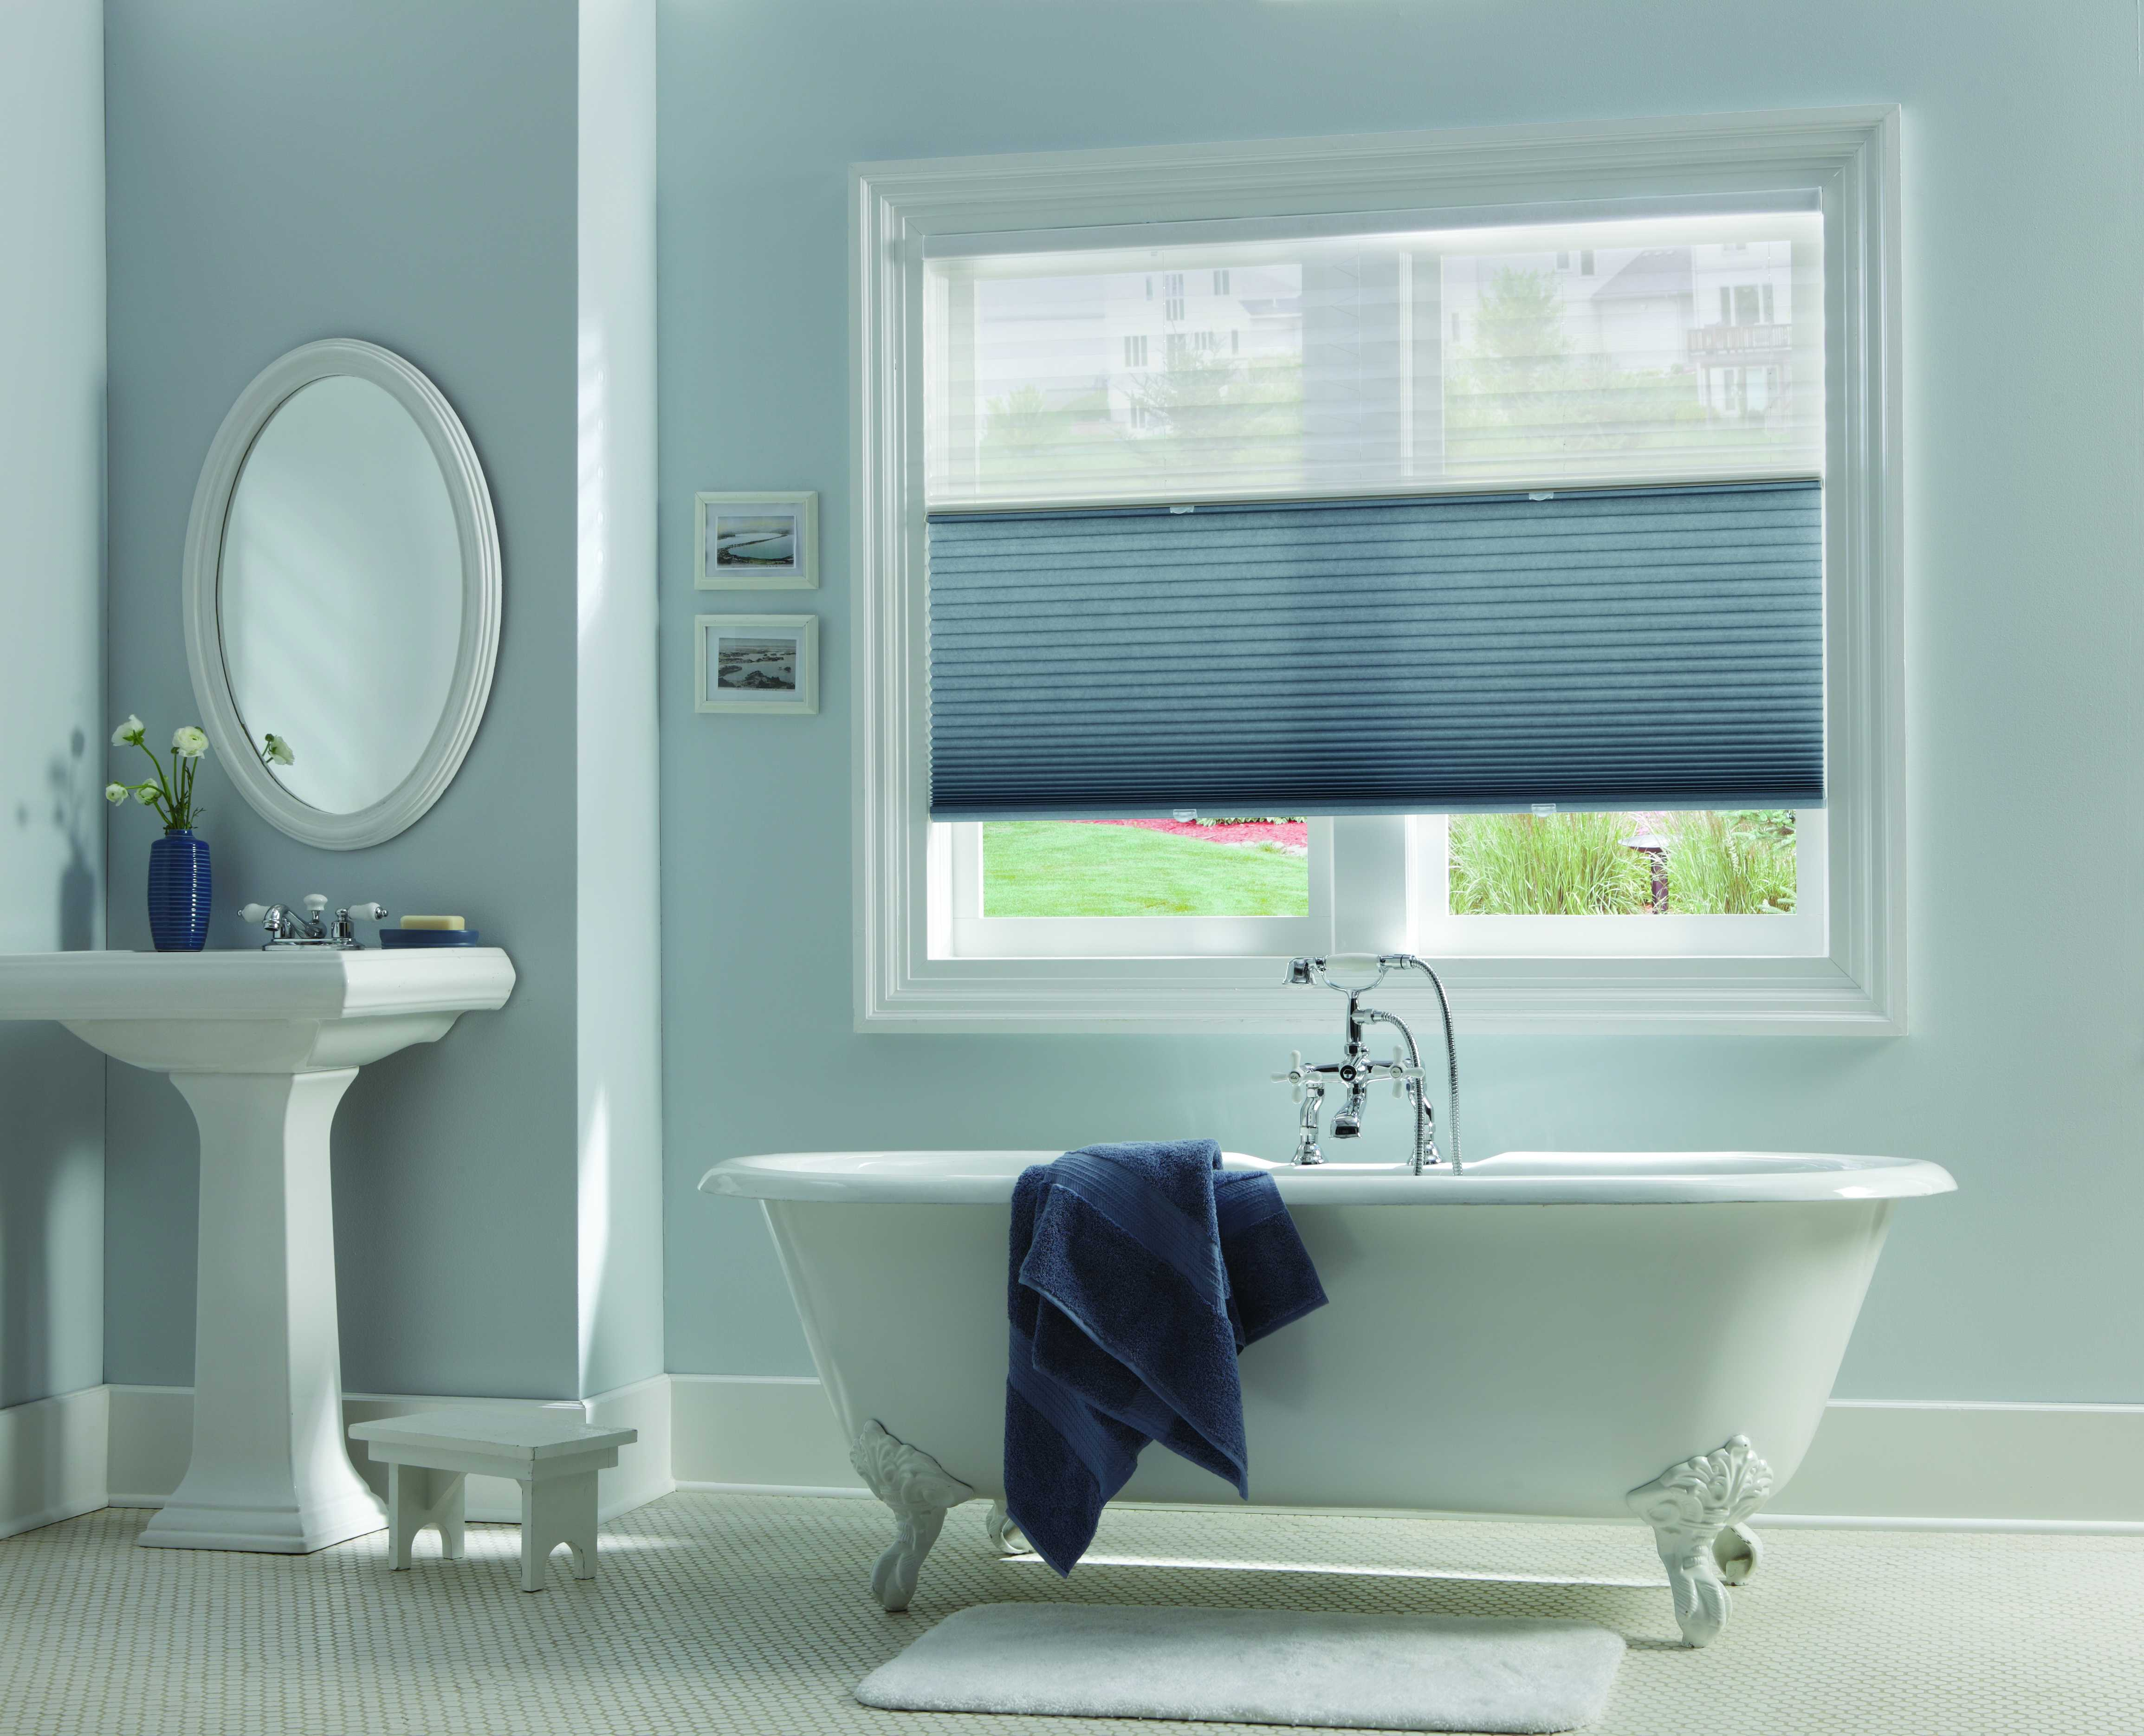 Generous White Vanity Mirror For Bathroom Small Small Country Bathroom Vanities Rectangular Mosaic Bathrooms Design Mirror For Bathroom Walls In India Old Clean The Bathroom With Vinegar And Baking Soda WhiteSan Diego Best Kitchen And Bath Solar Window Screens   3 Blind Mice Window Coverings